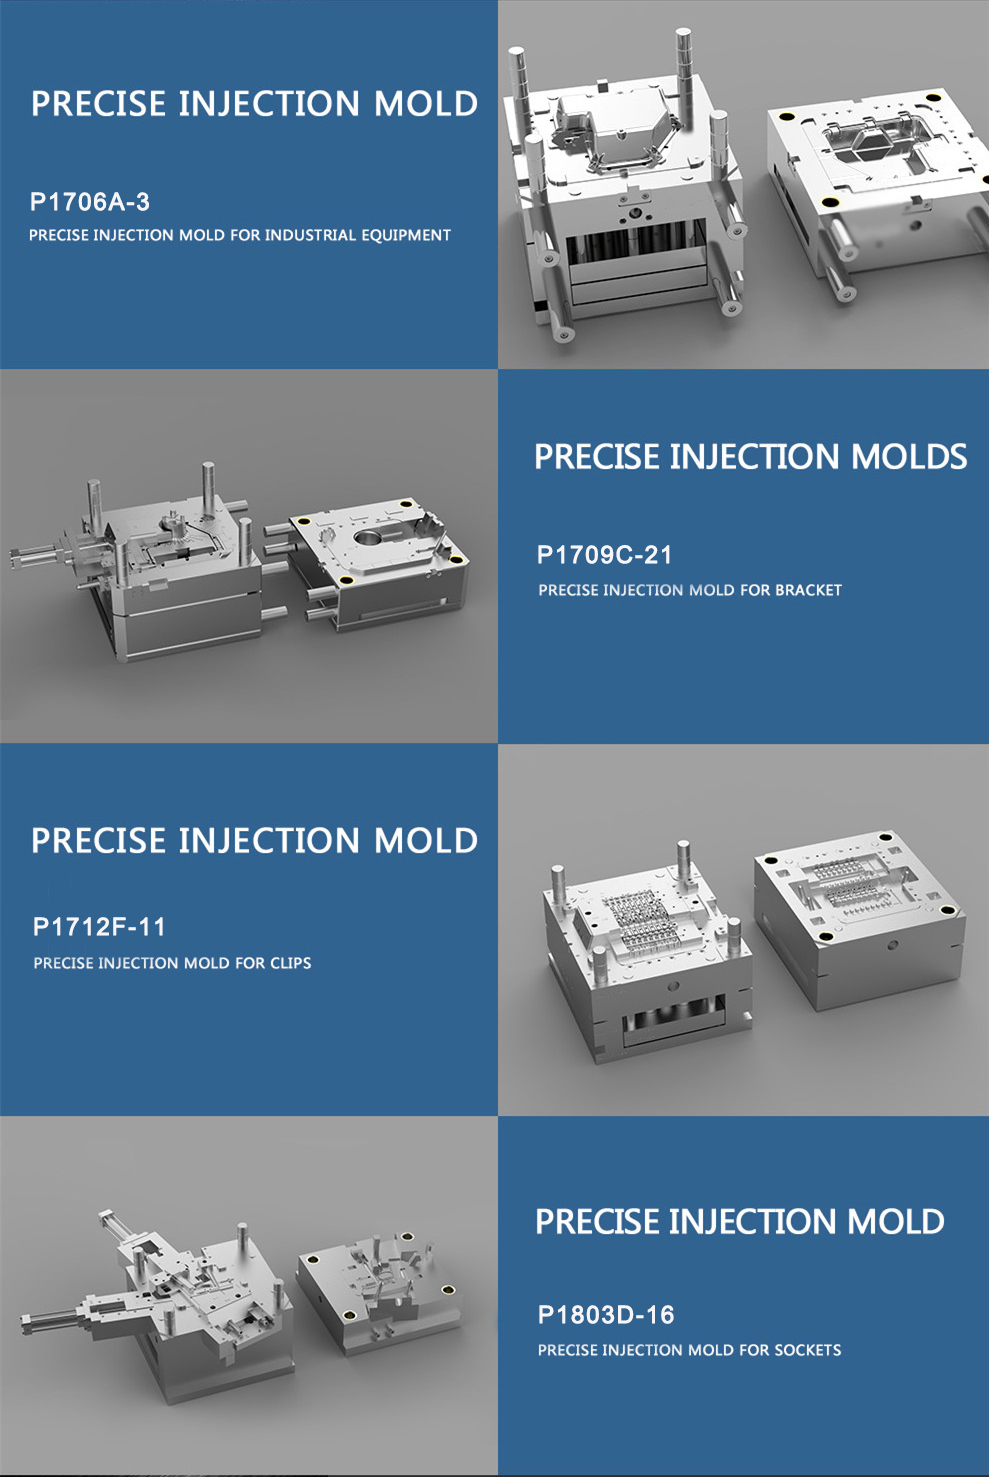 INJECTION MOLD FOR INTERNAL BODY